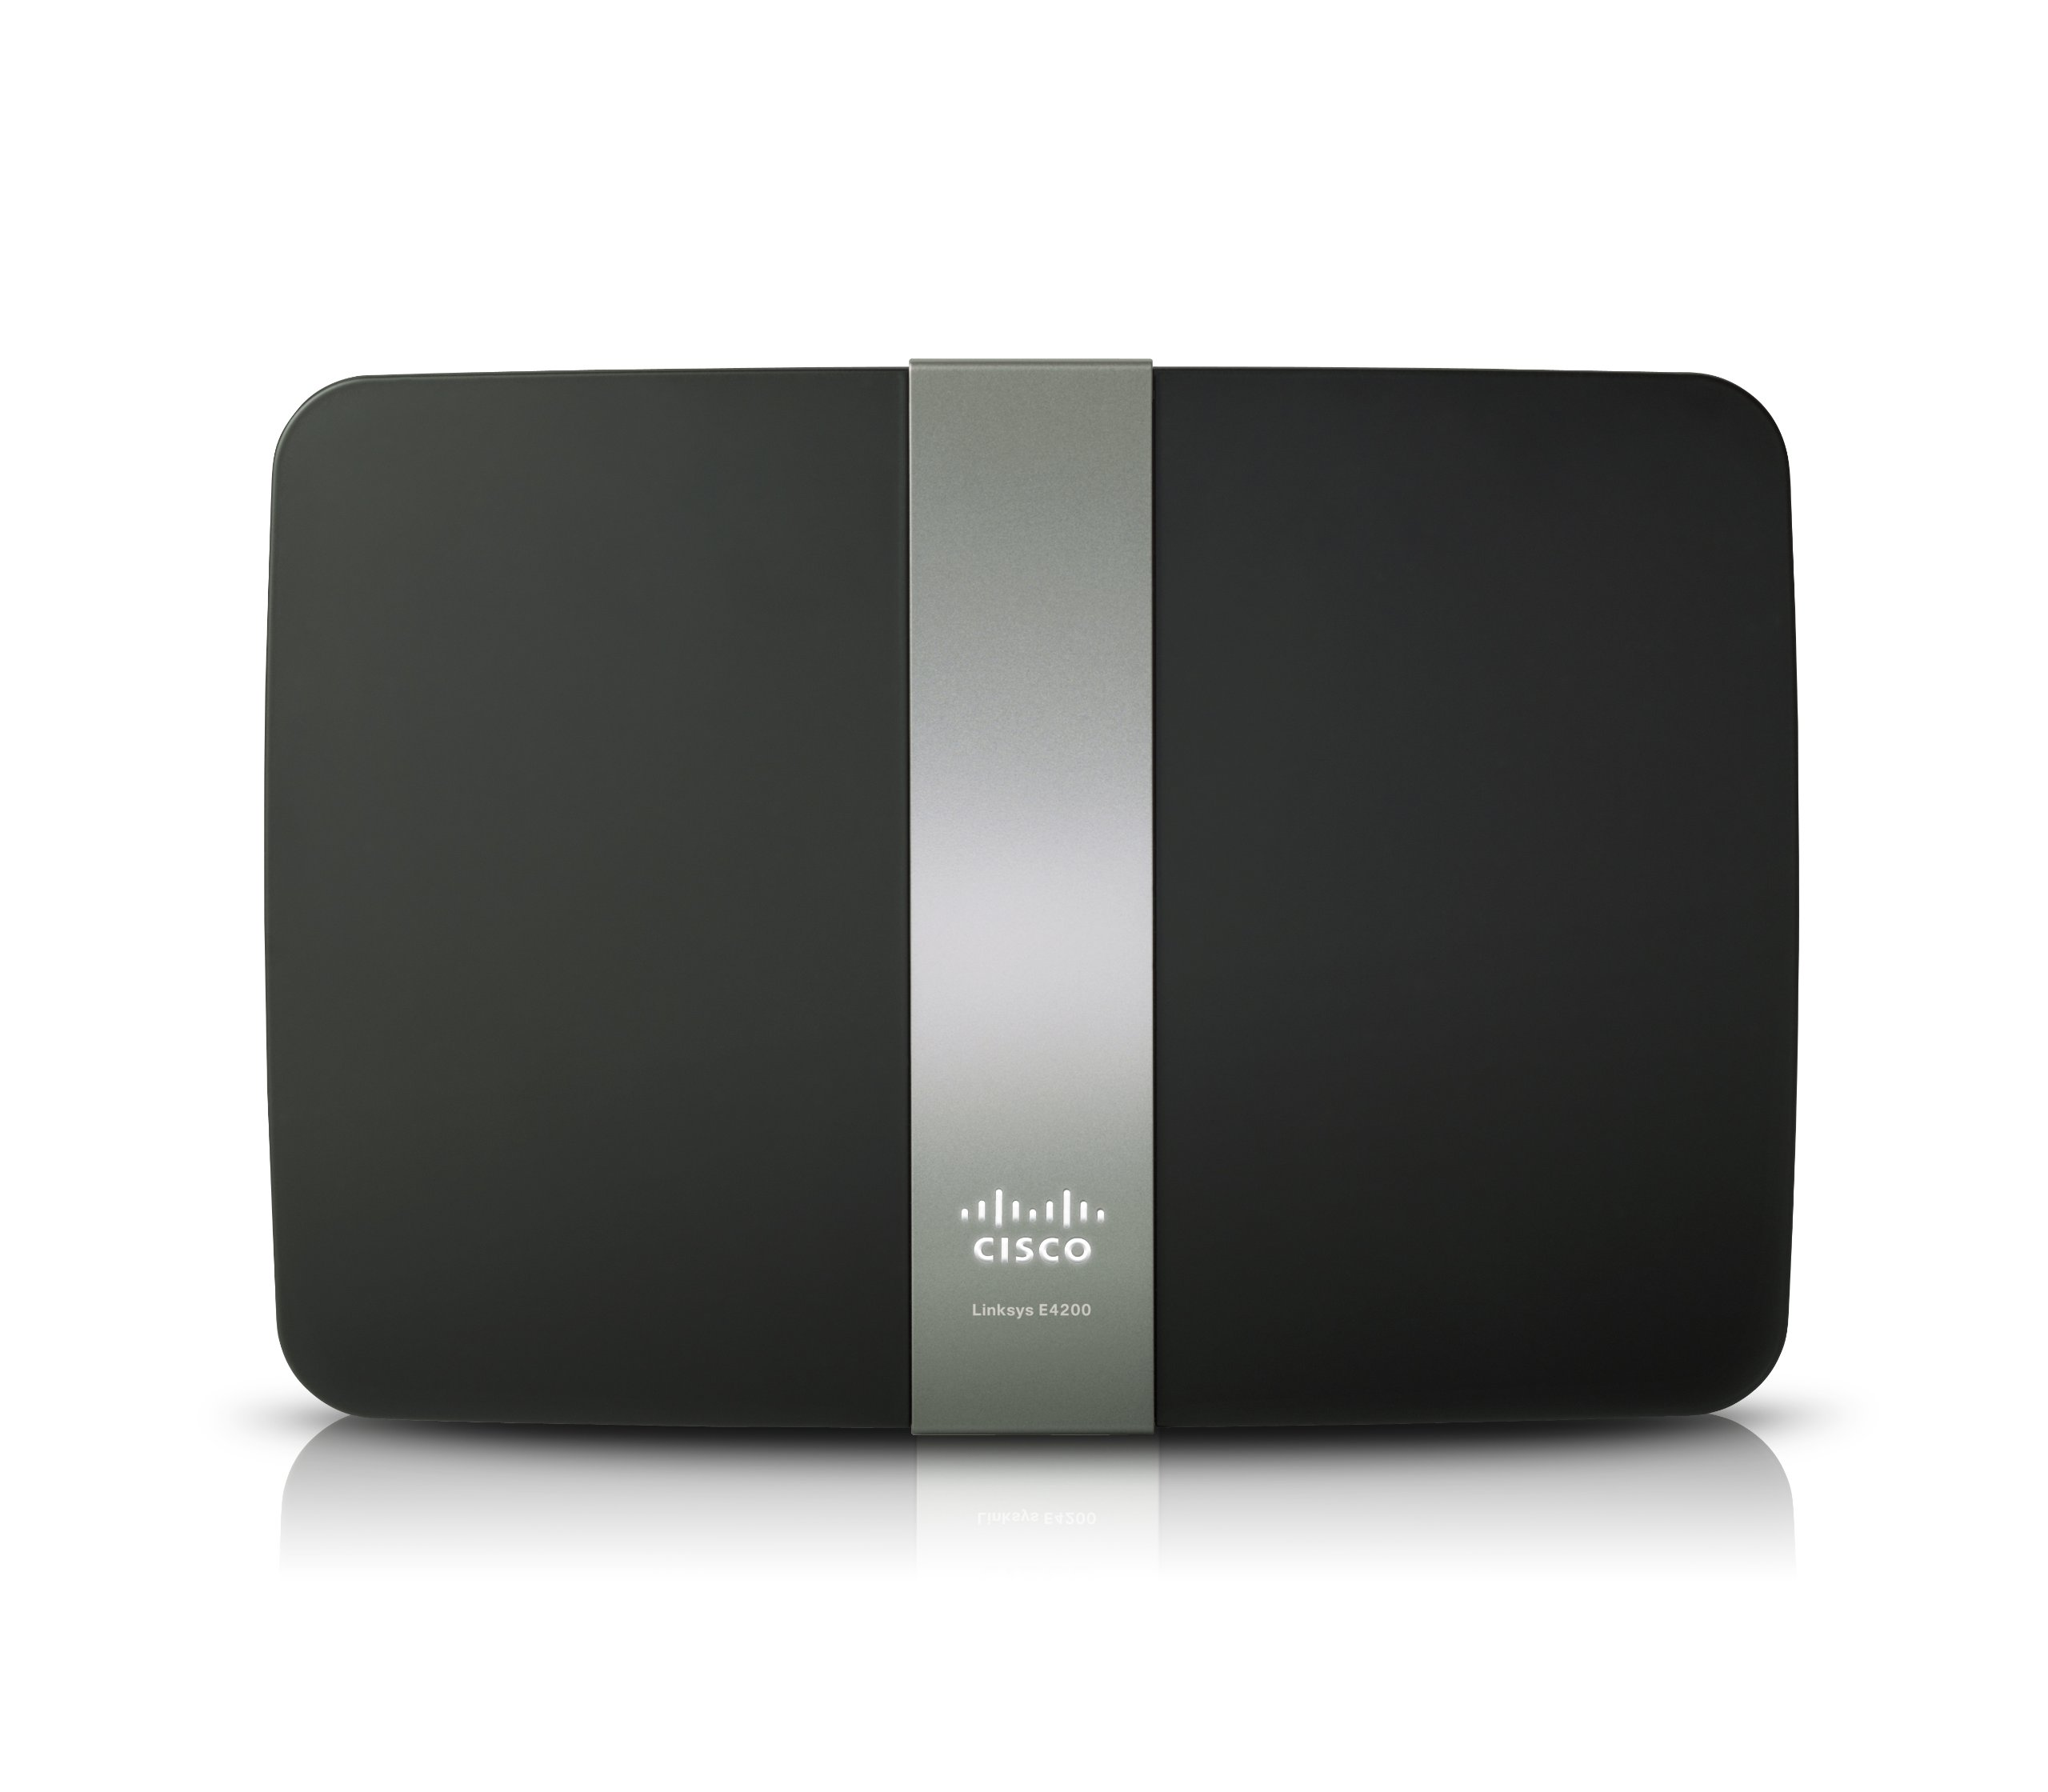 Cisco-Linksys E4200 Dual-Band Wireless-N Router by Cisco